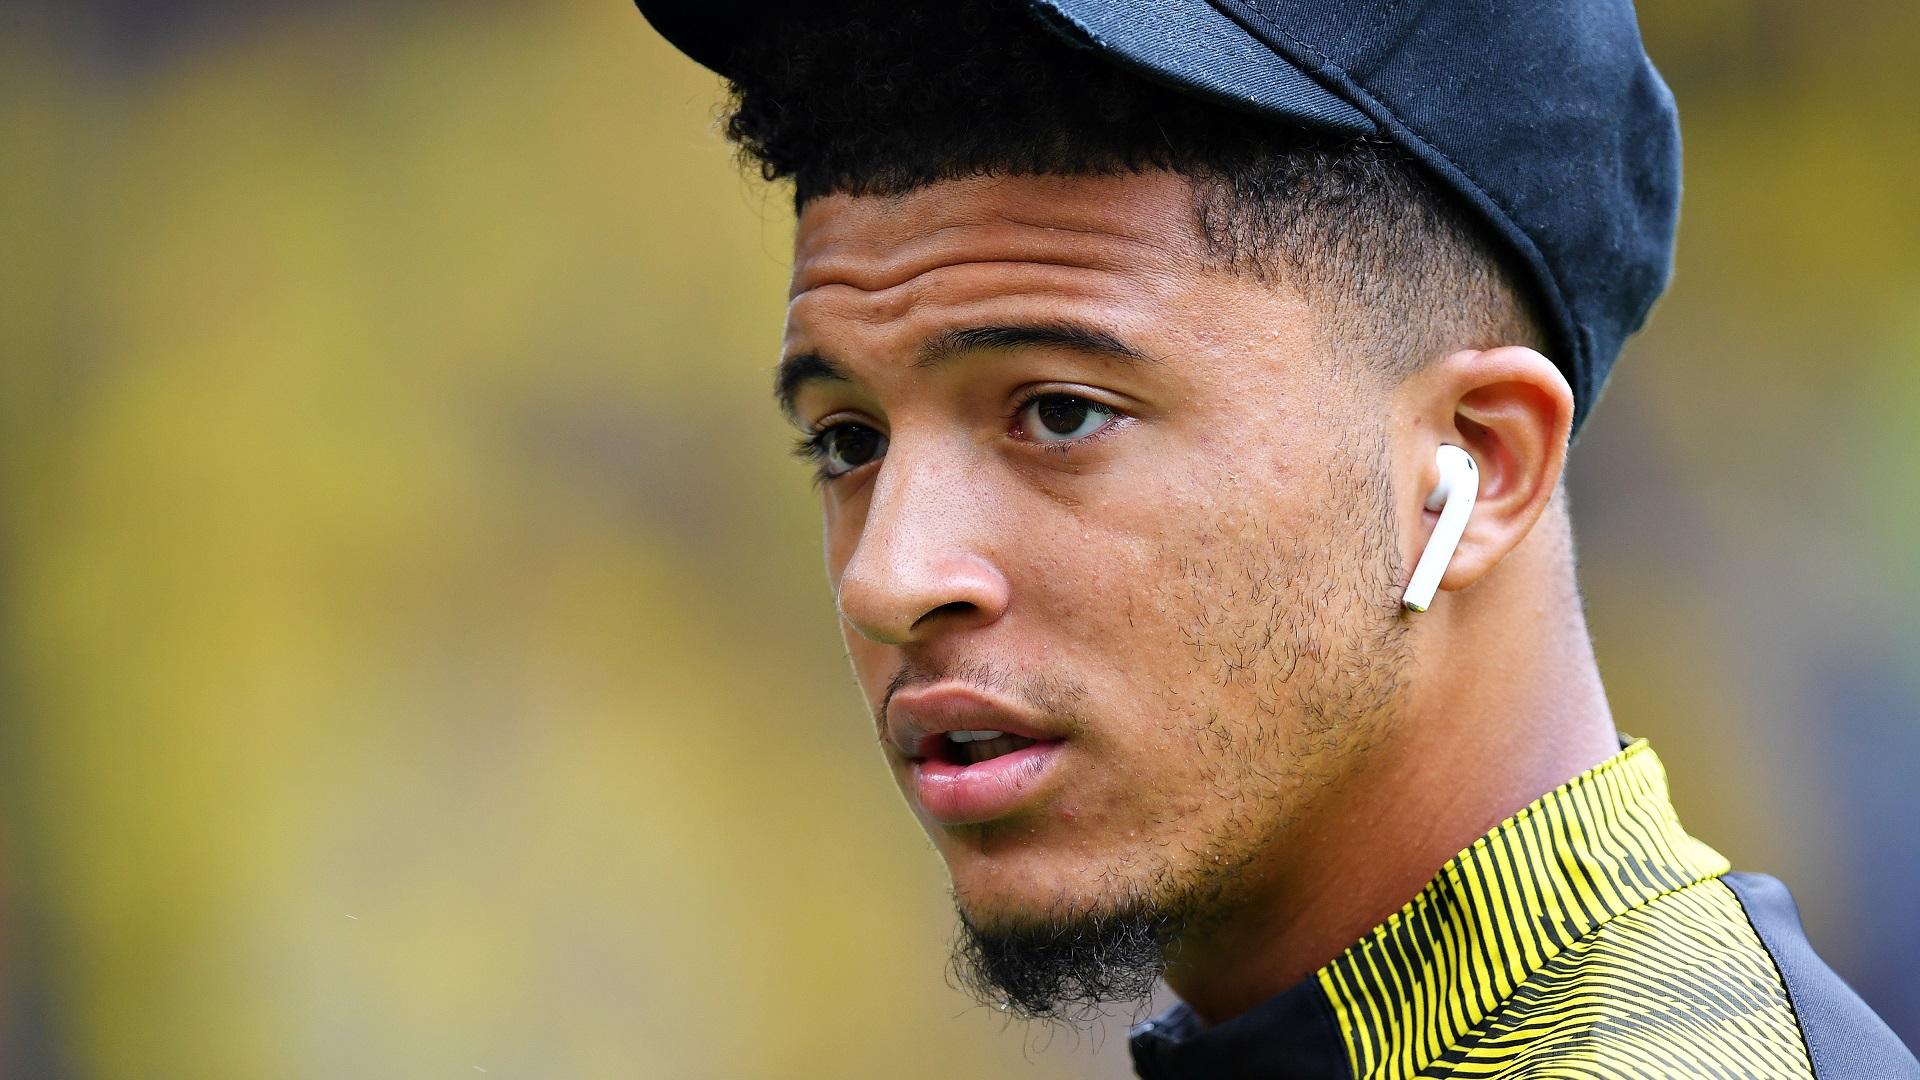 What is Jadon Sancho's net worth and how much does the Borussia Dortmund star earn?